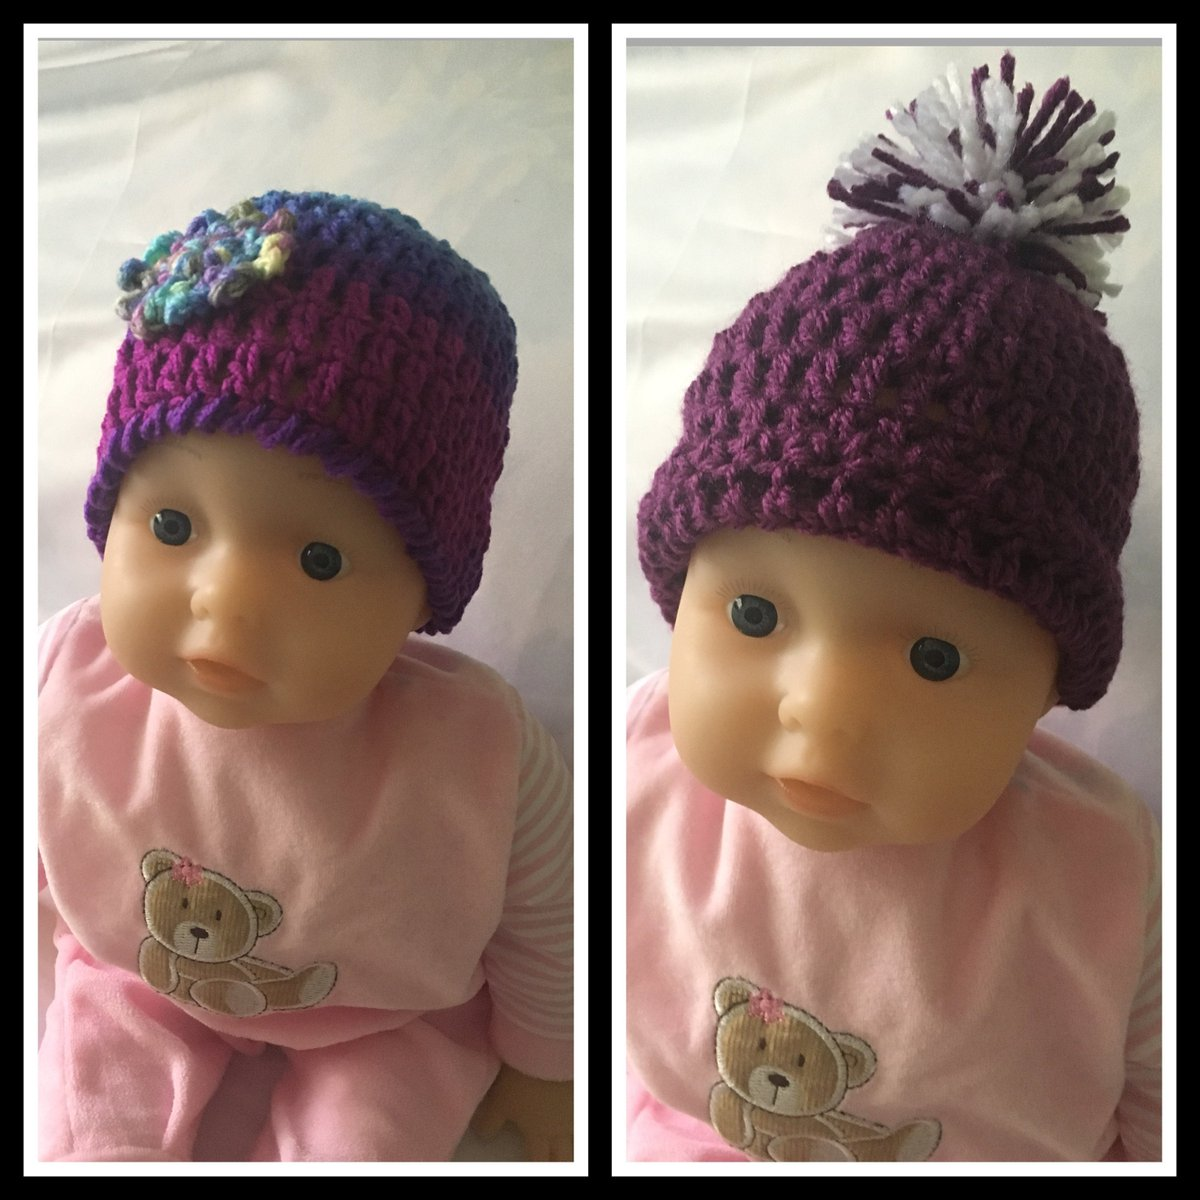 Excited to share this from my #etsy shop: Set of Two Purple Crochet Baby Beanies, Newborn Hats, Baby Photo Prop, Baby Shower Gift, Baby Beanie with Flower and Pom Pom  #accessories #purple #blue #babybeanies